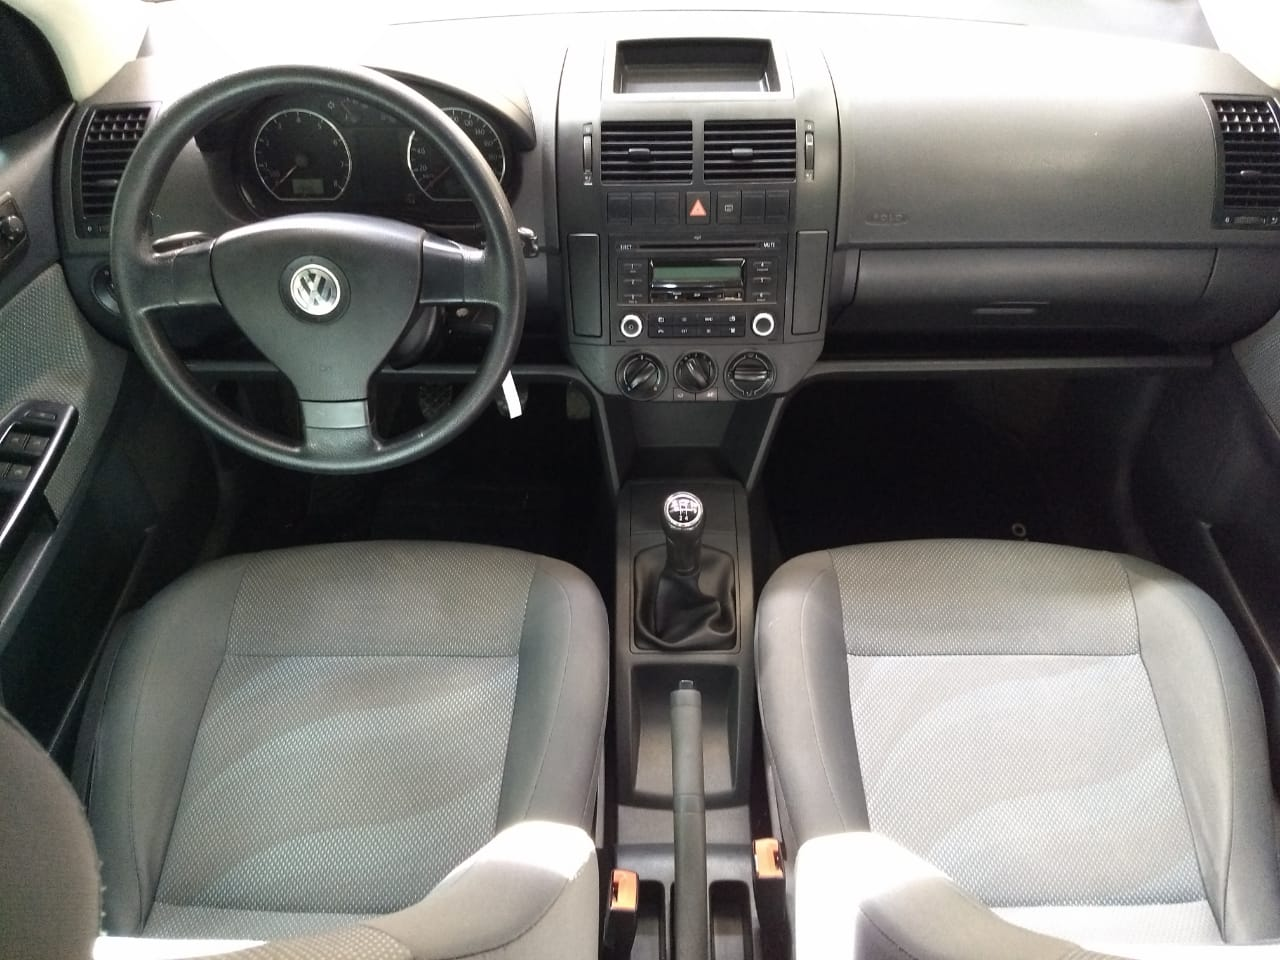 Volkswagen Polo SEDAN 1.6L 2011